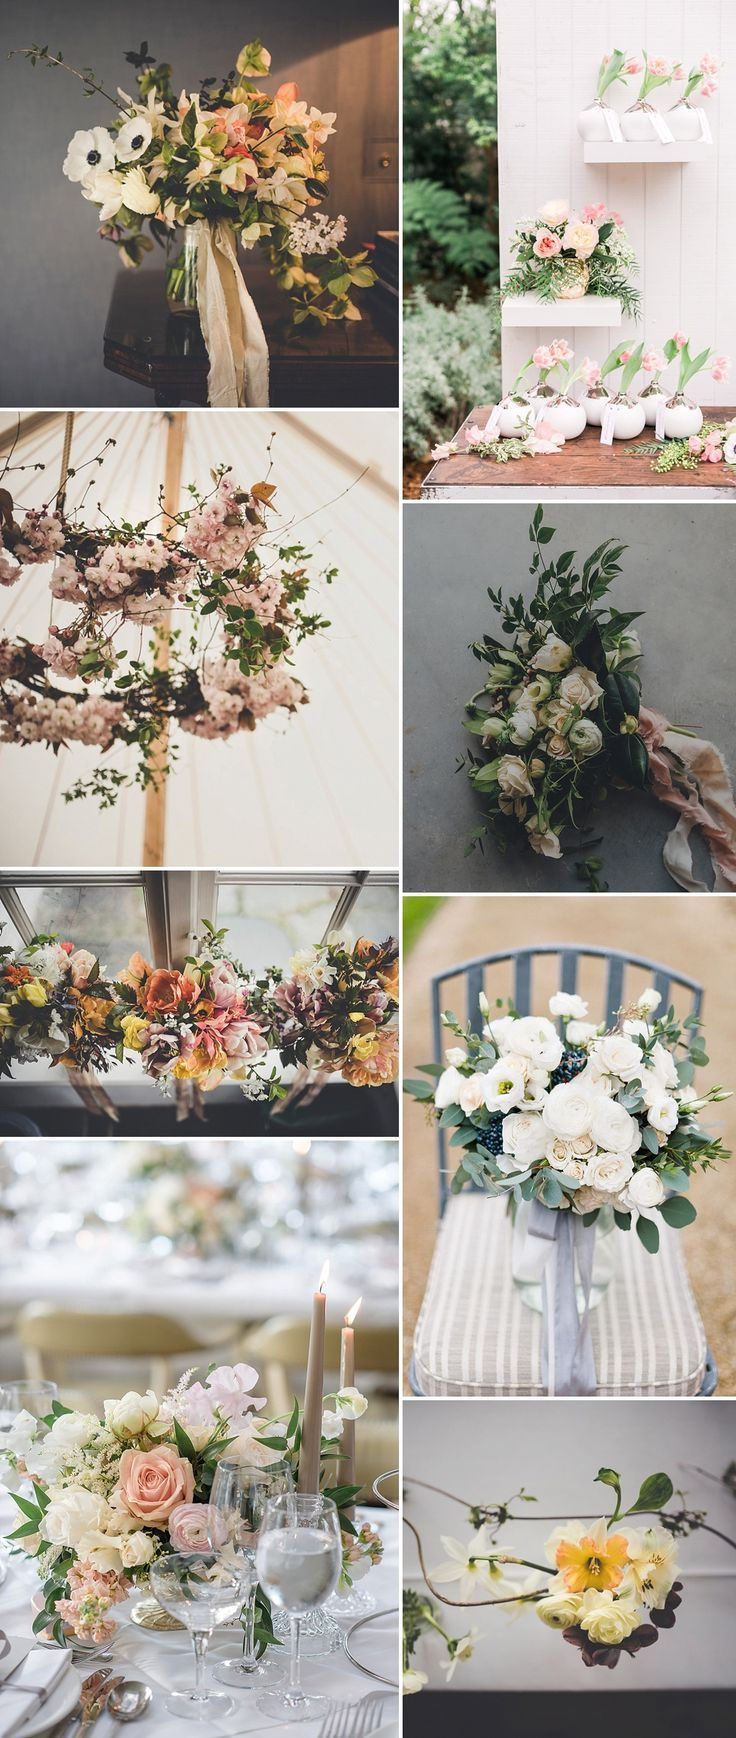 25 swoon worthy spring amp summer wedding bouquets tulle amp chantilly - Spring Flower Wedding Inspiration From The Love Lust List